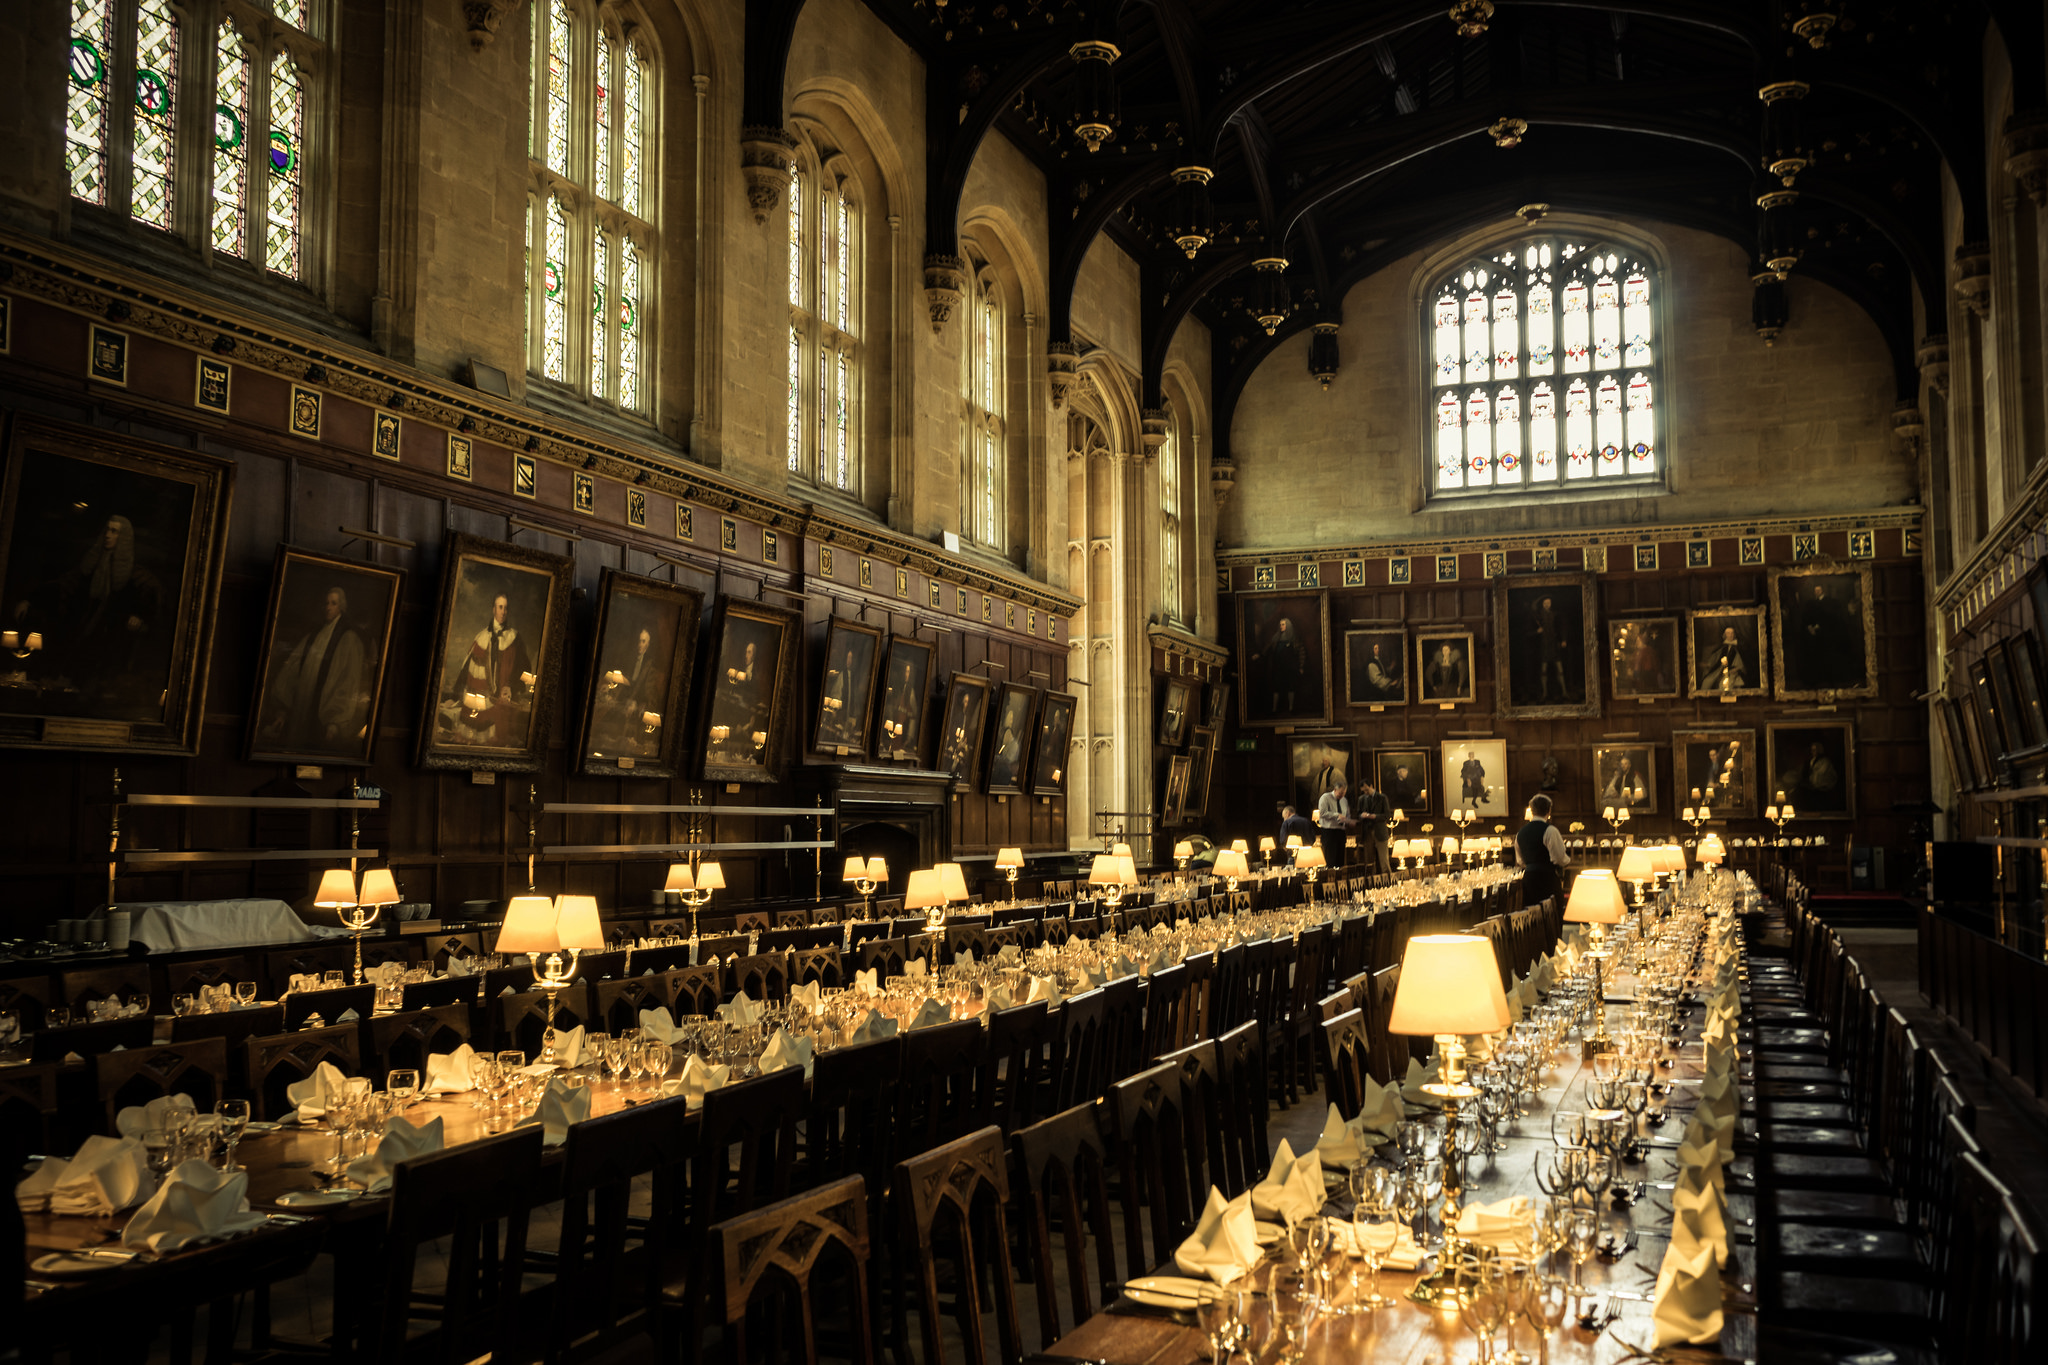 Christ Church Picture Gallery The Thames Valley, Christ Church's dining hall | Oxfords, Hall and Churches